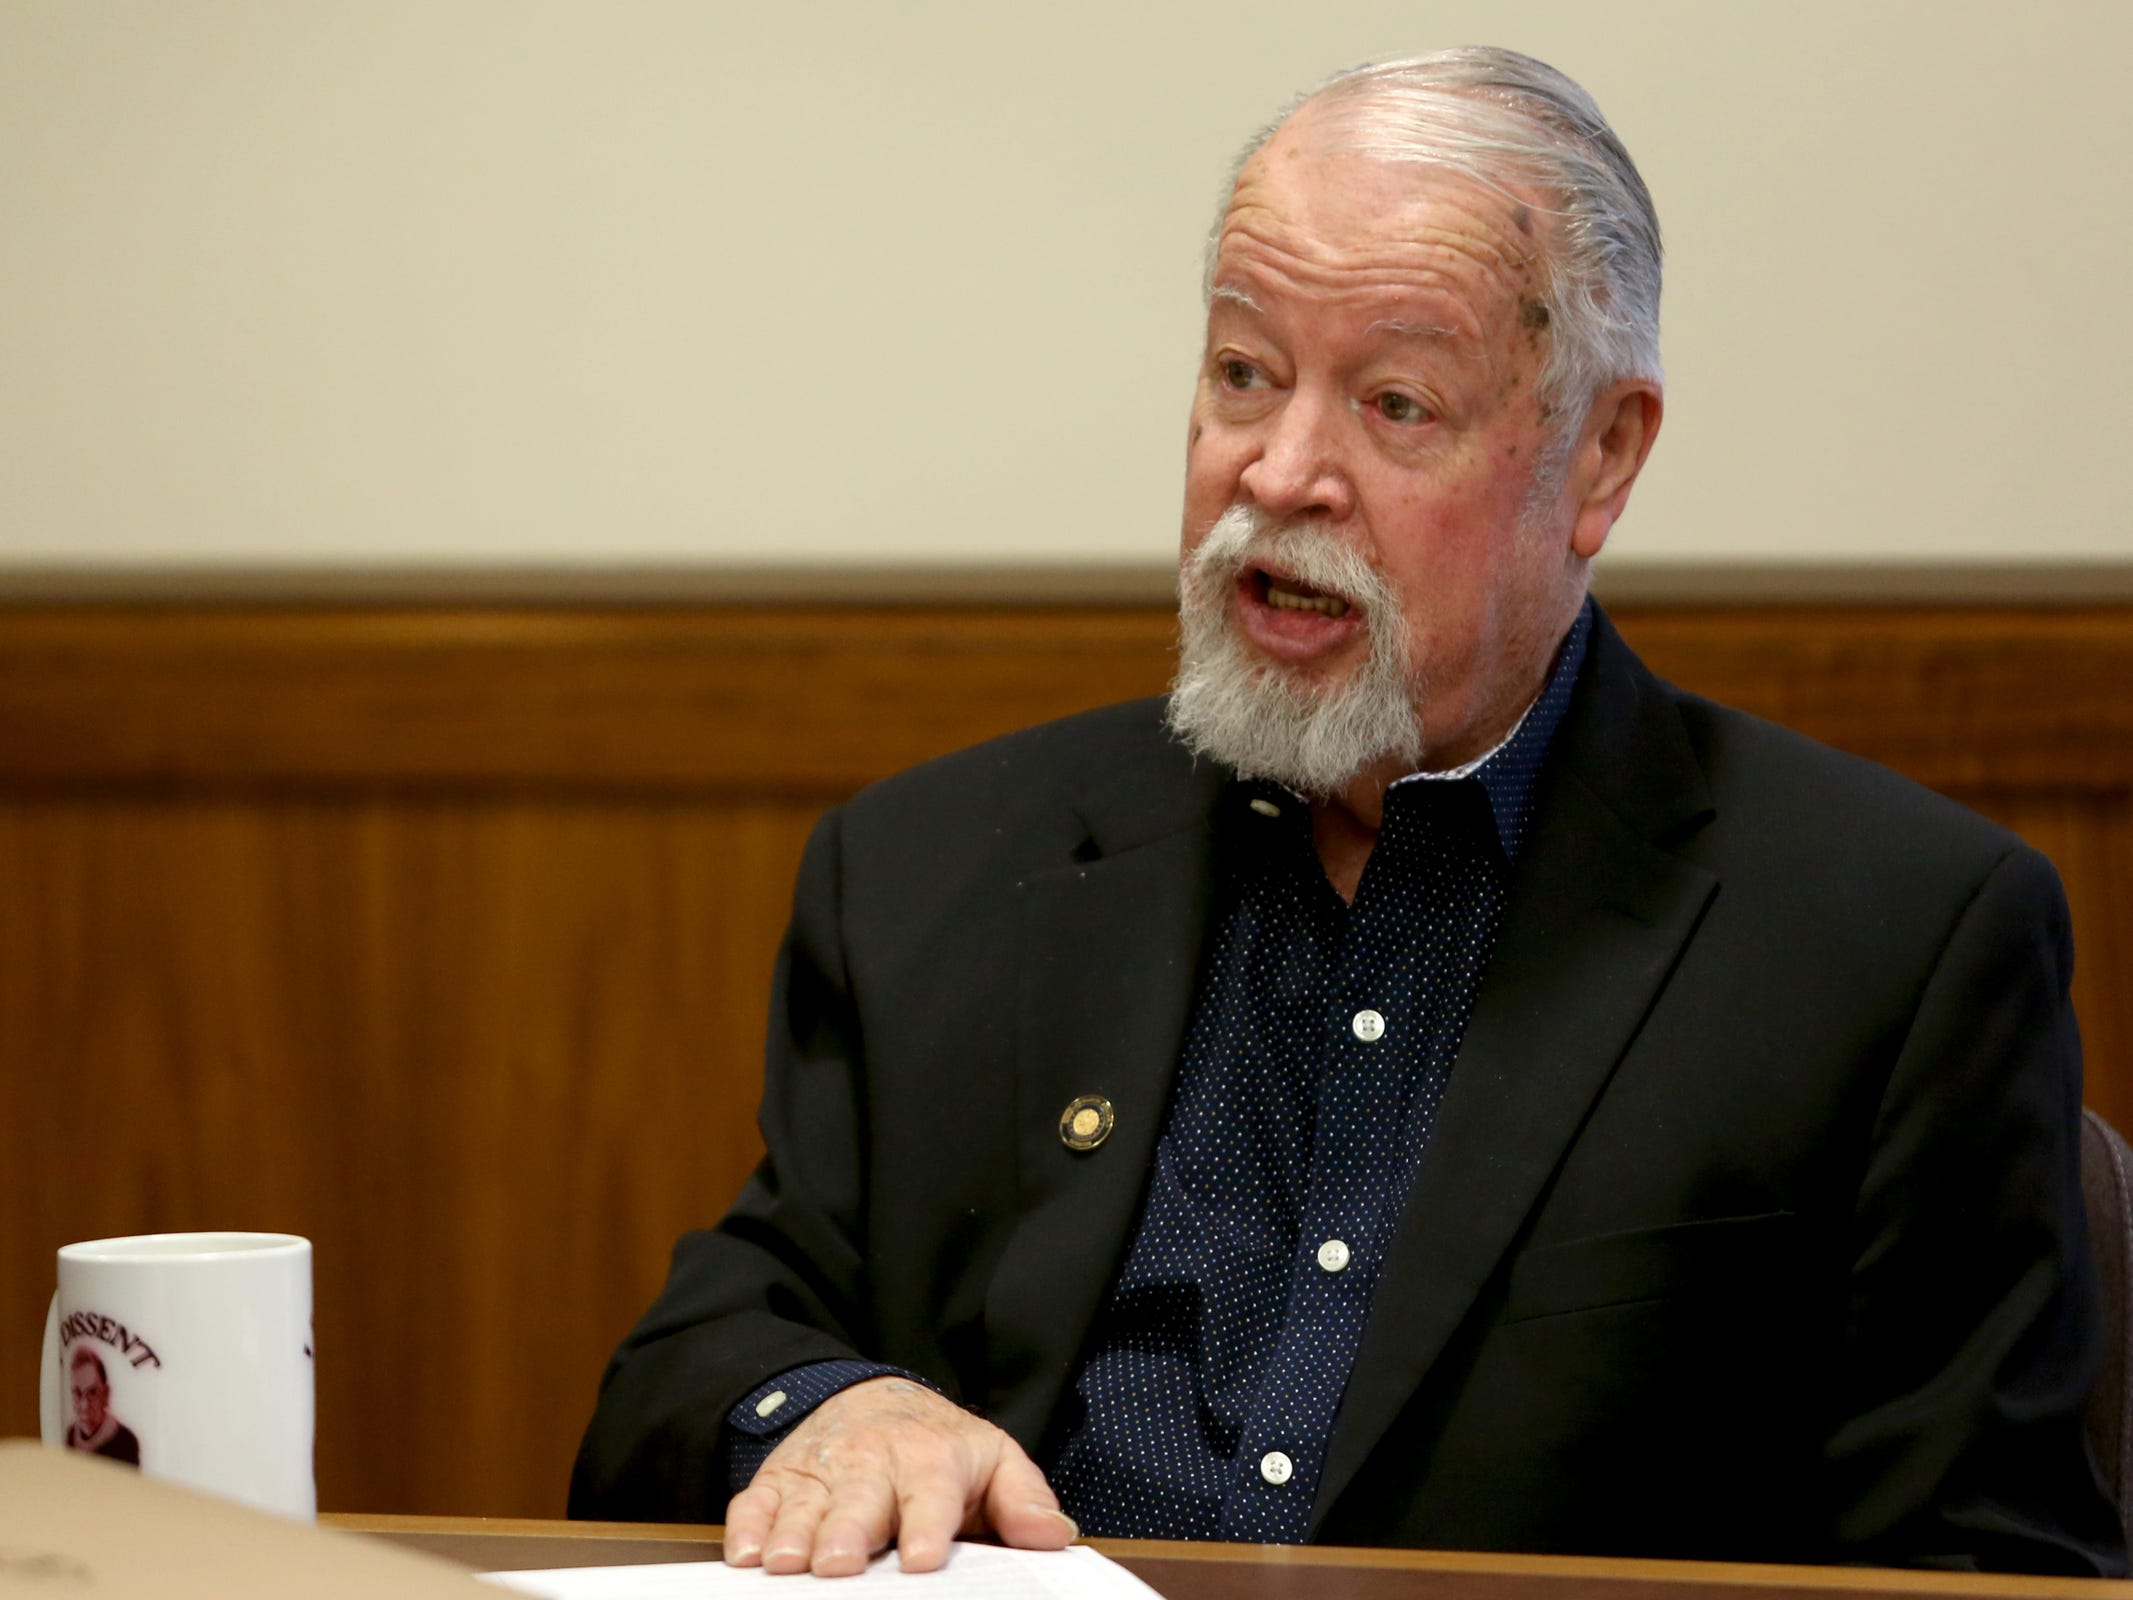 Sen. Chuck Riley, D-Hillsboro, attends a meeting with Senate Democratic leadership at the Oregon State Capitol in Salem on the first day of the 2019 legislative session, Tuesday, Jan. 22, 2019.